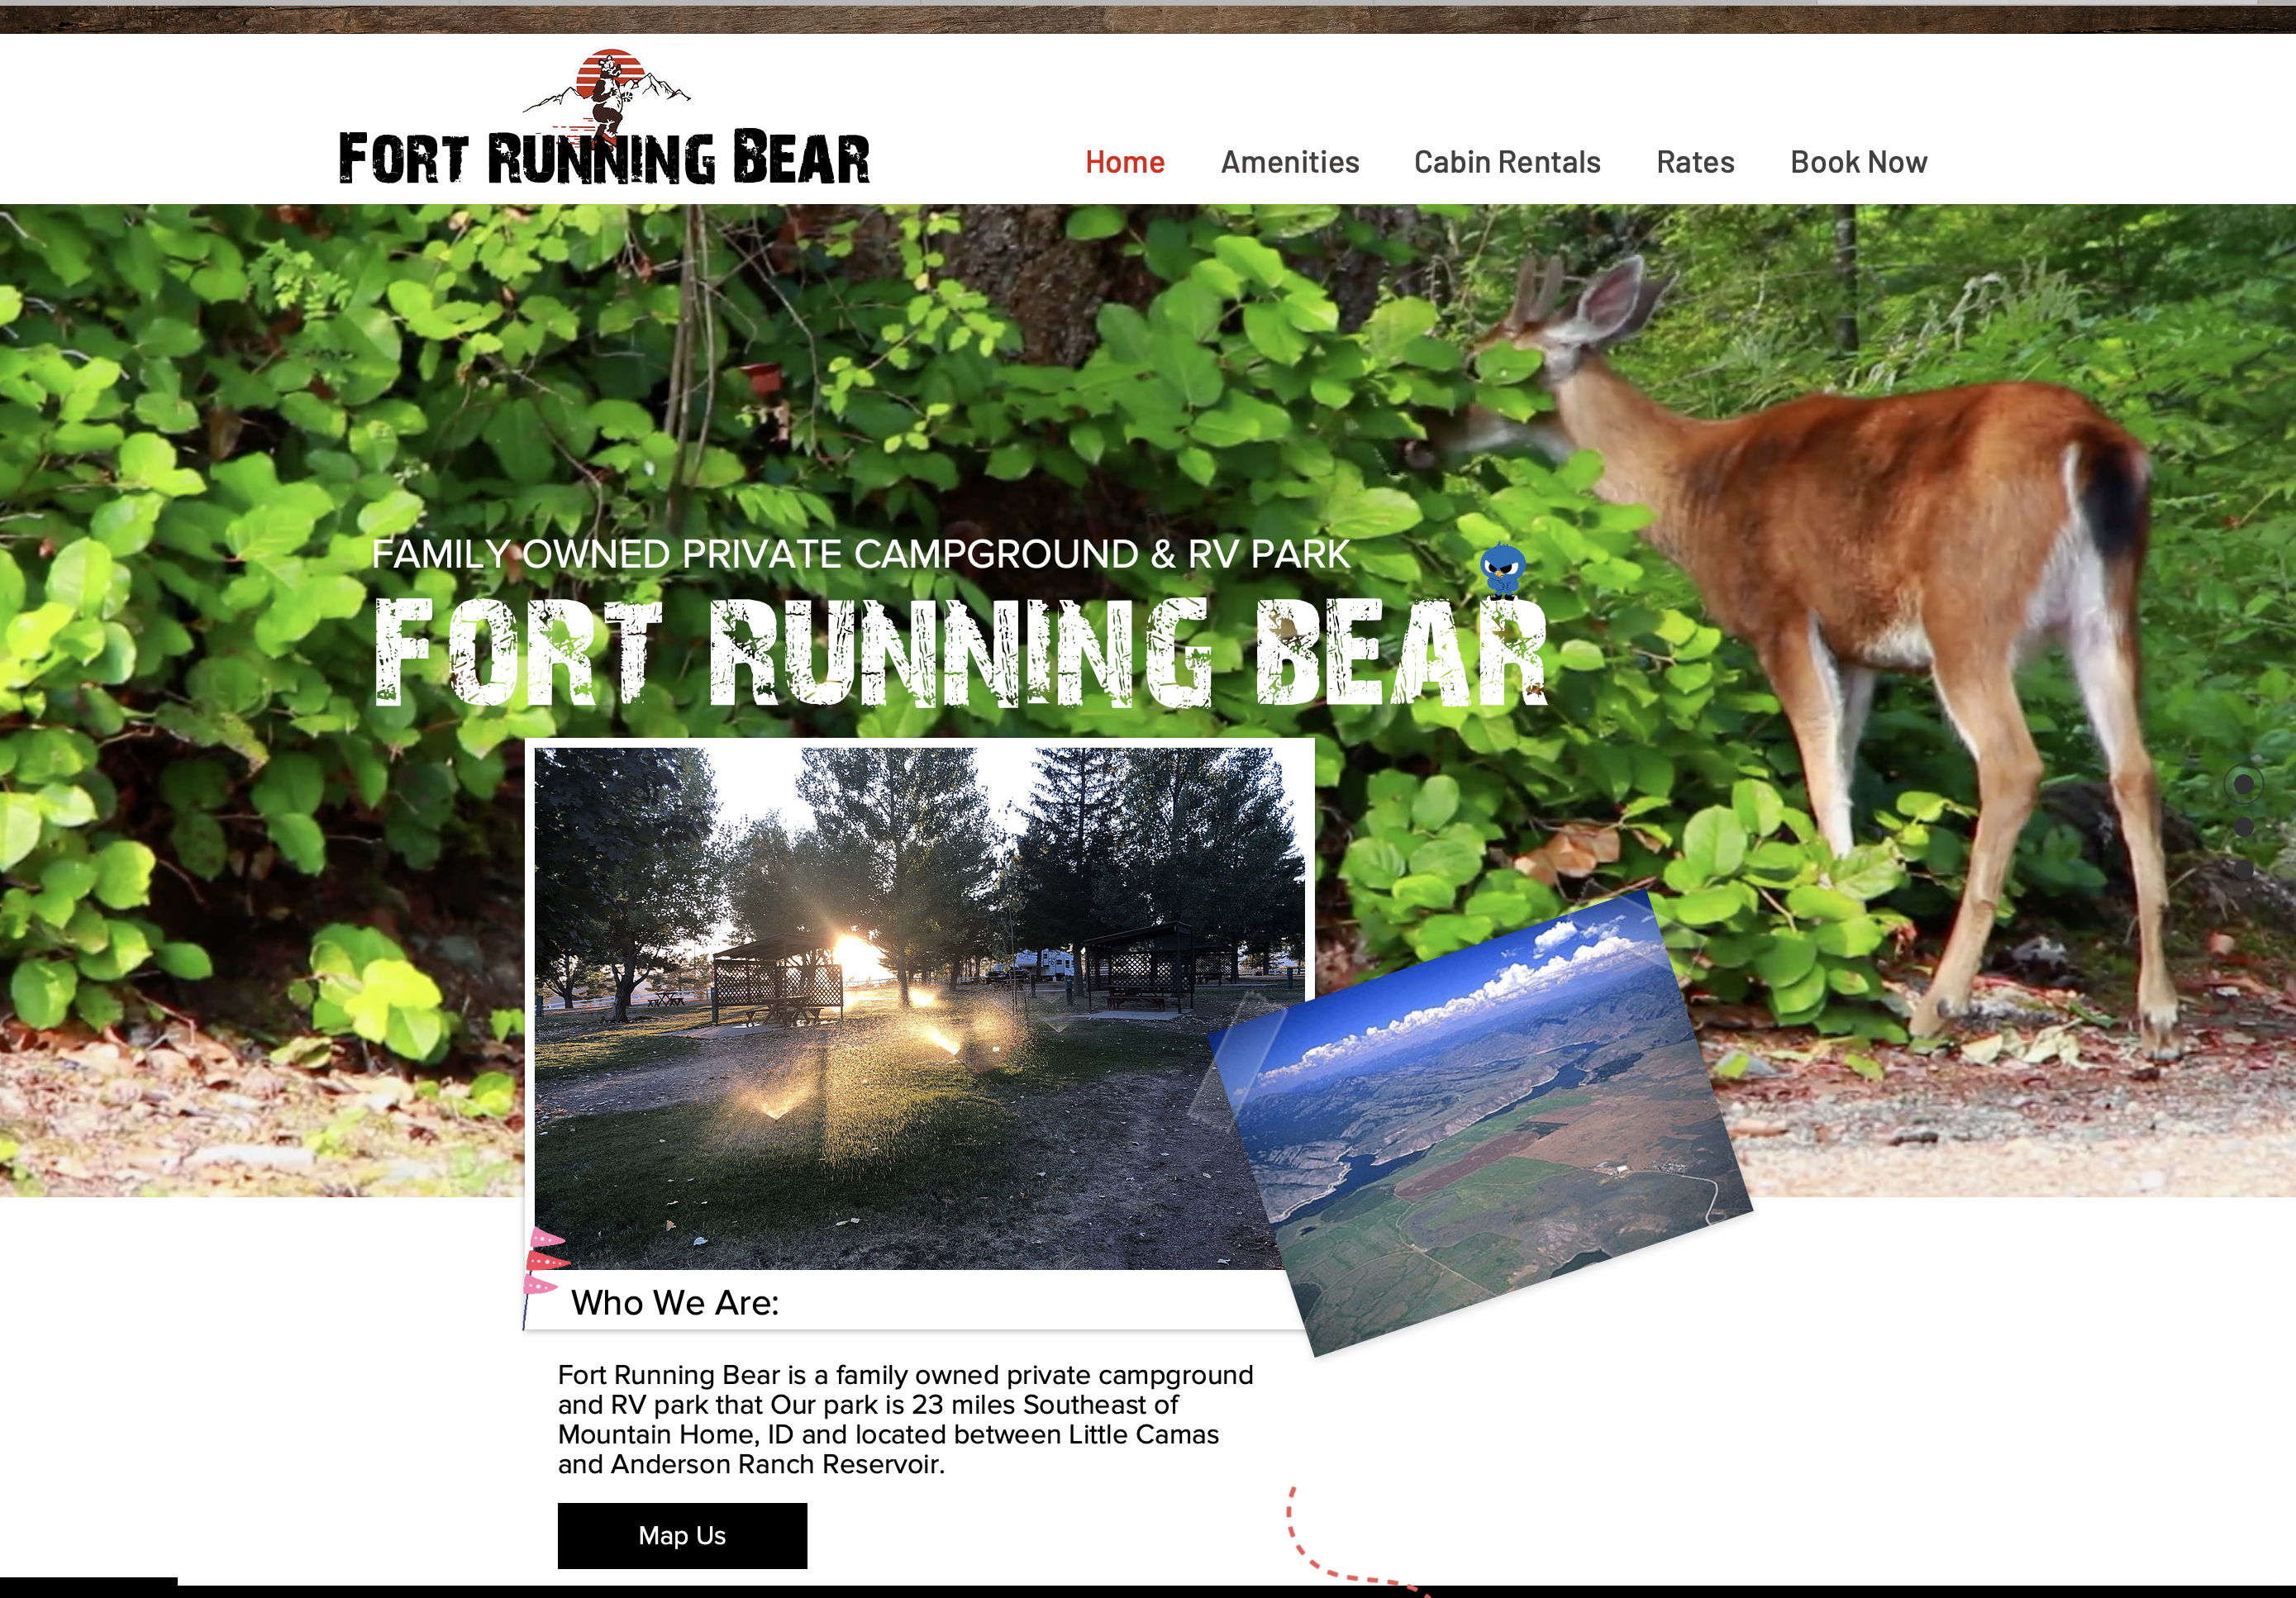 Fort Running Bear Site